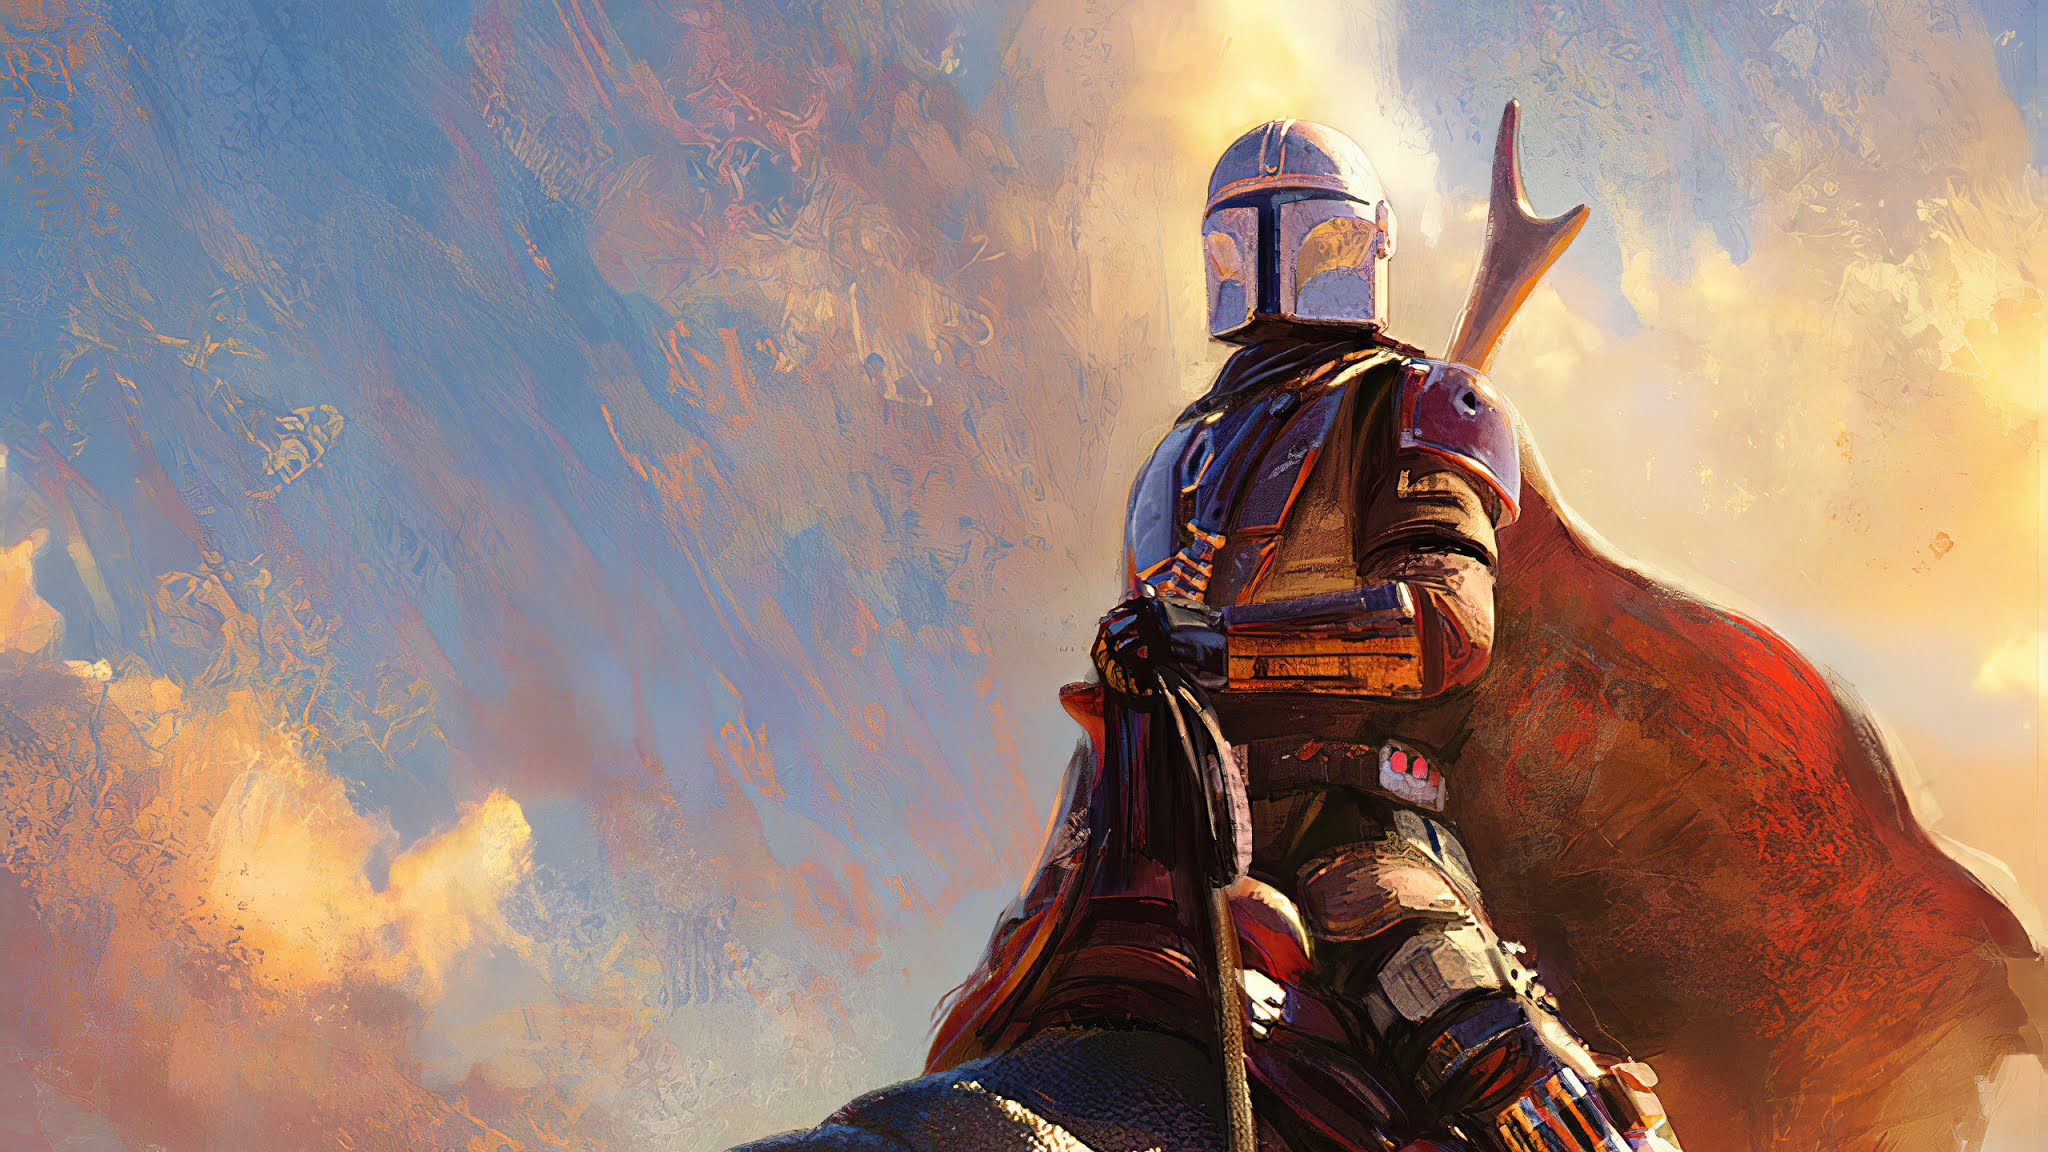 The Mandalorian Hd Wallpaper